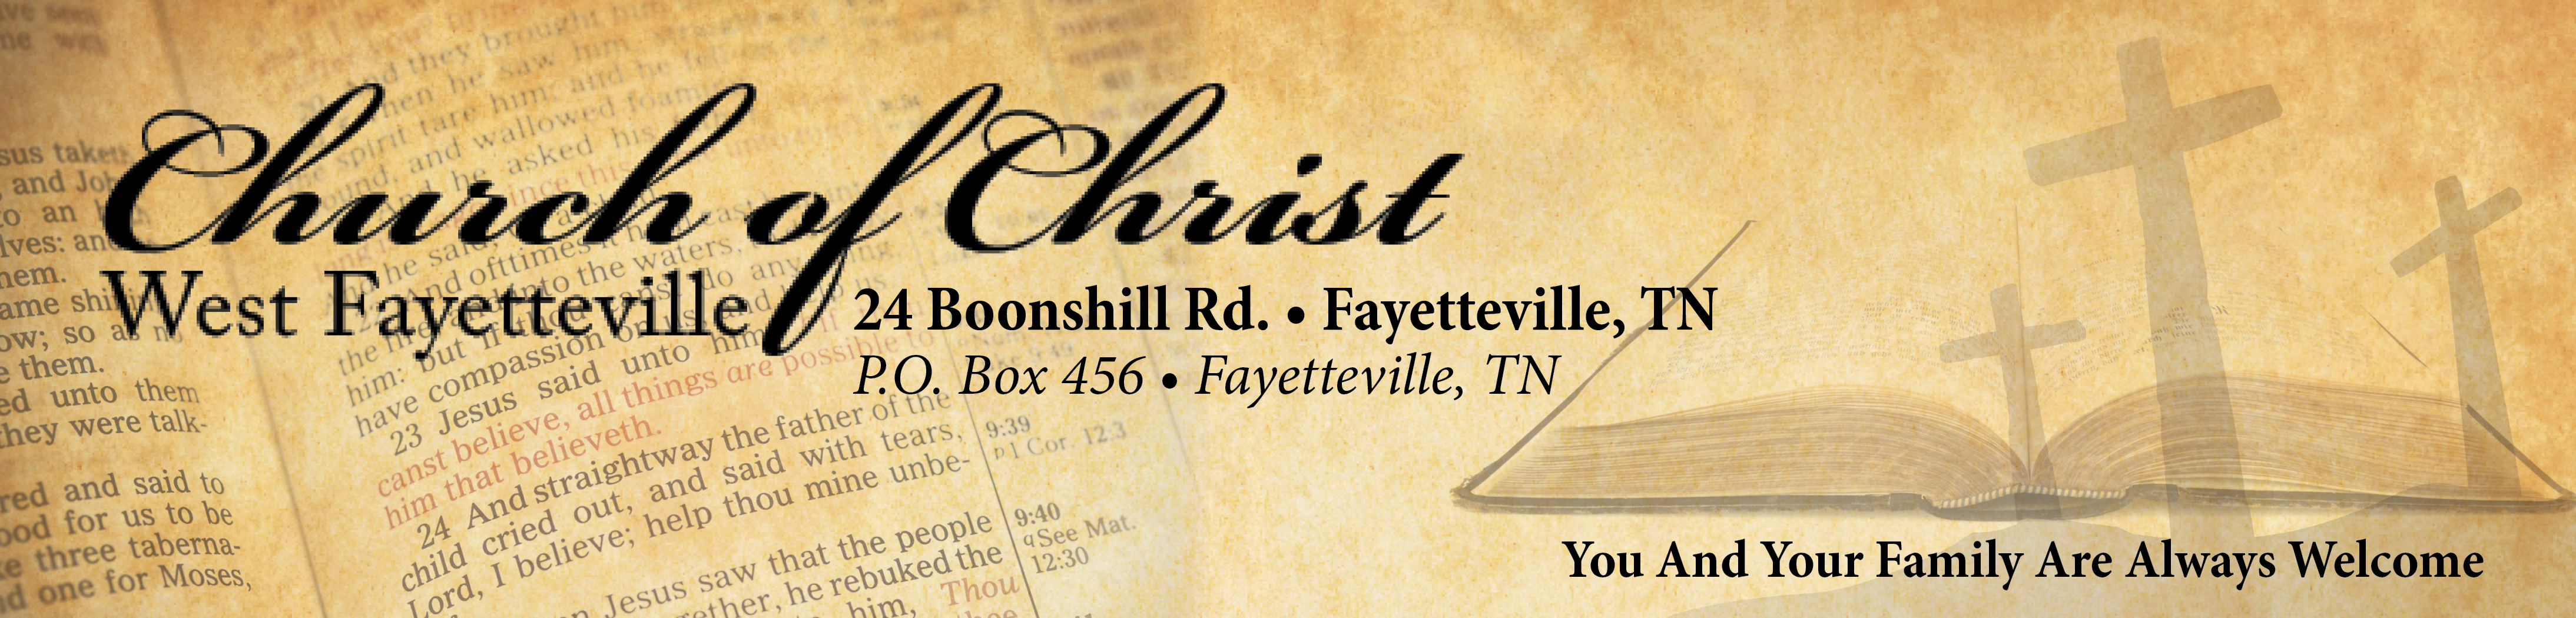 West Fayetteville Church of Christ